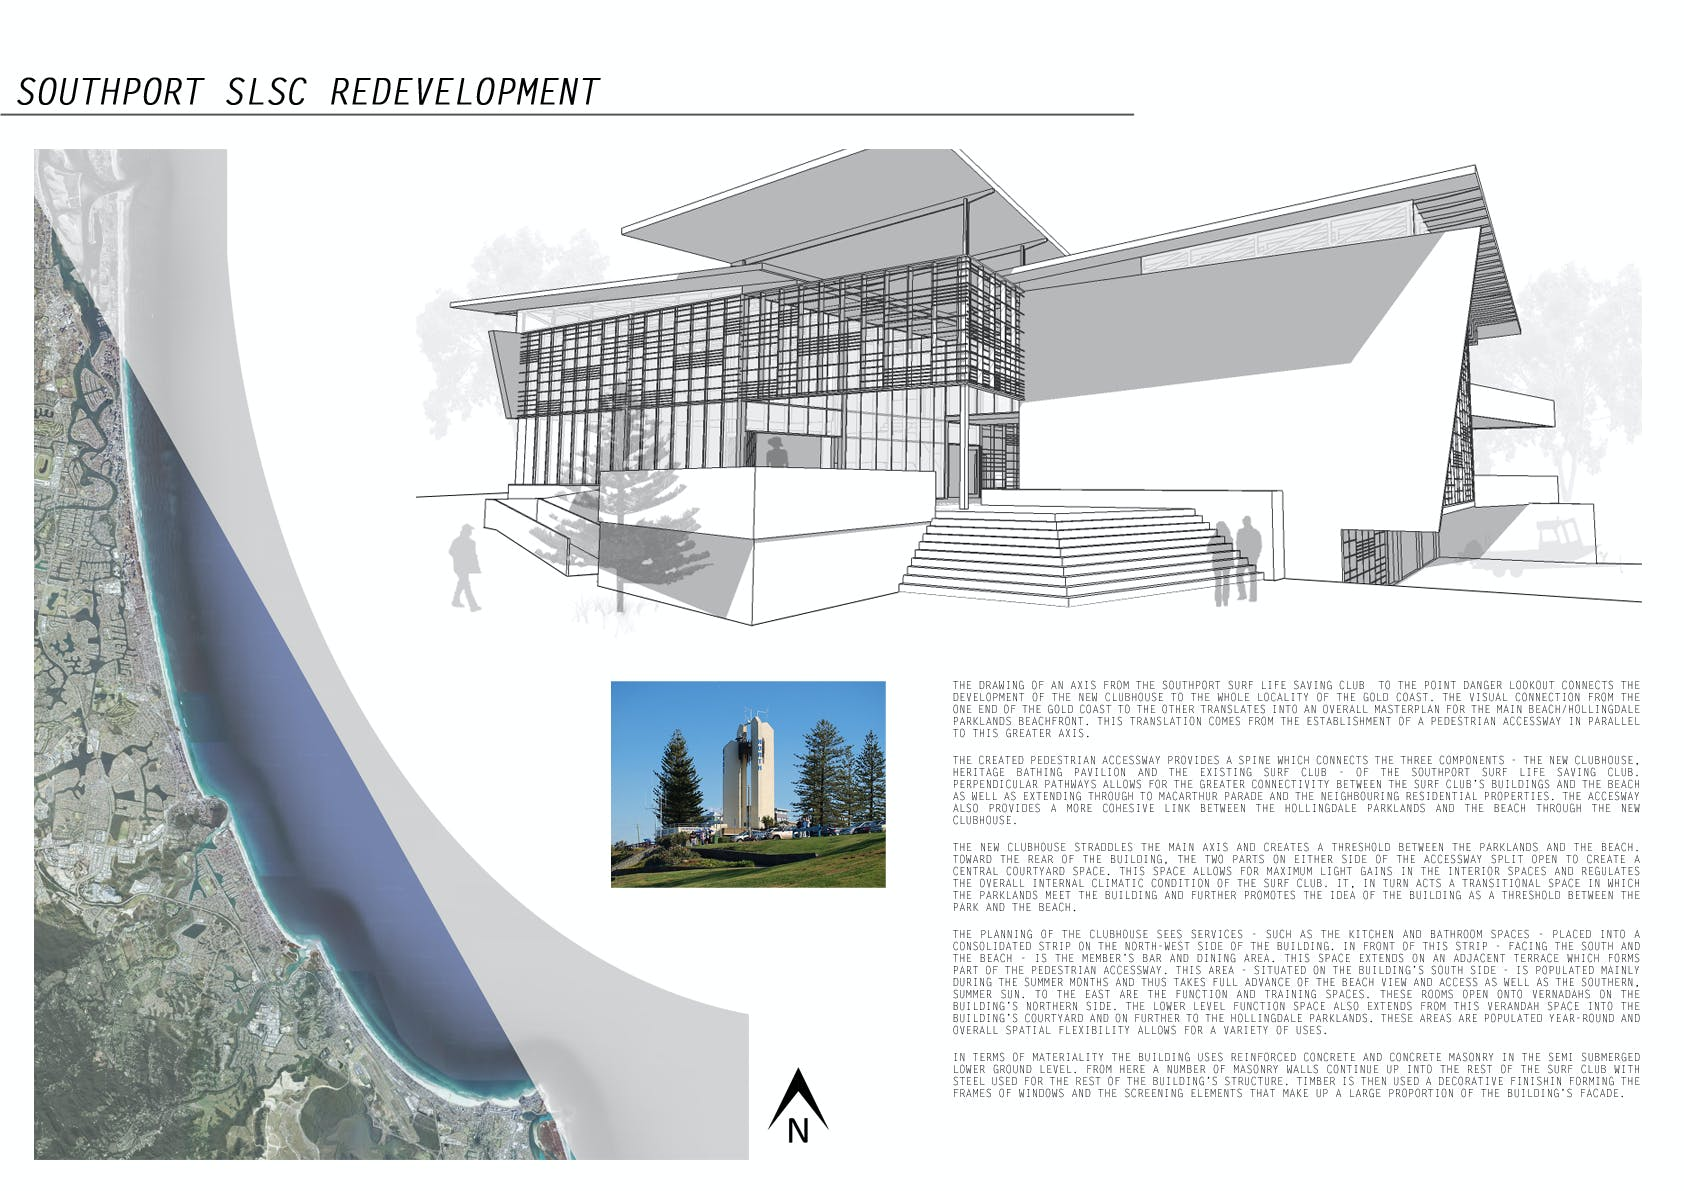 Southport slsc redevelopment jack guthrie archinect for The concept of space in mamluk architecture